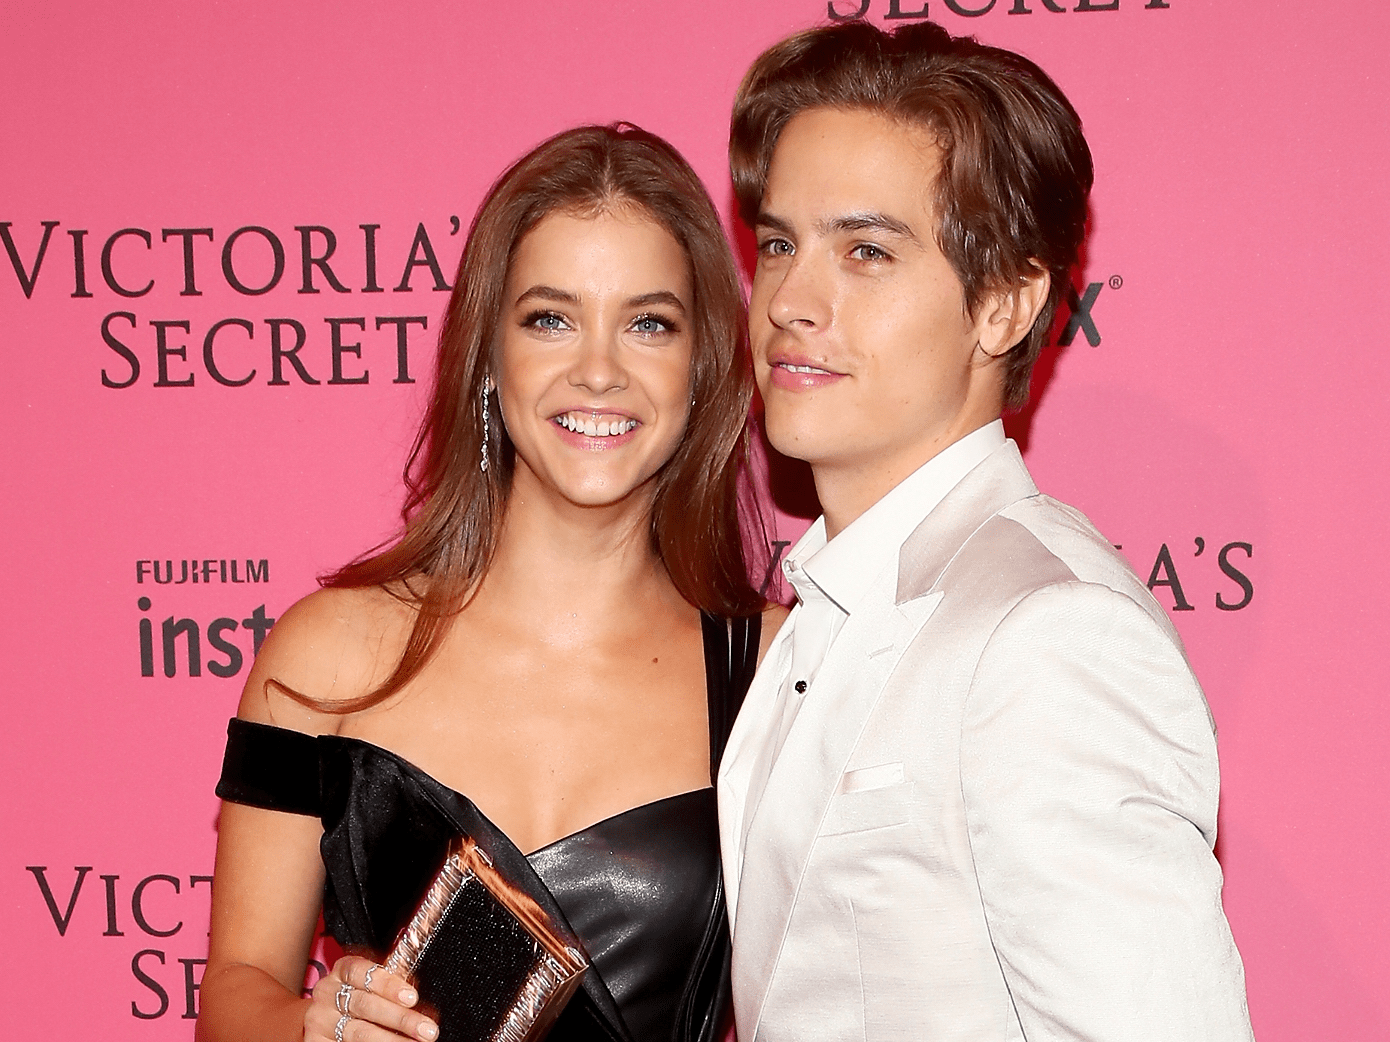 dylan-sprouse-shaves-his-head-and-poses-with-girlfriend-barbara-palvin-in-new-snap